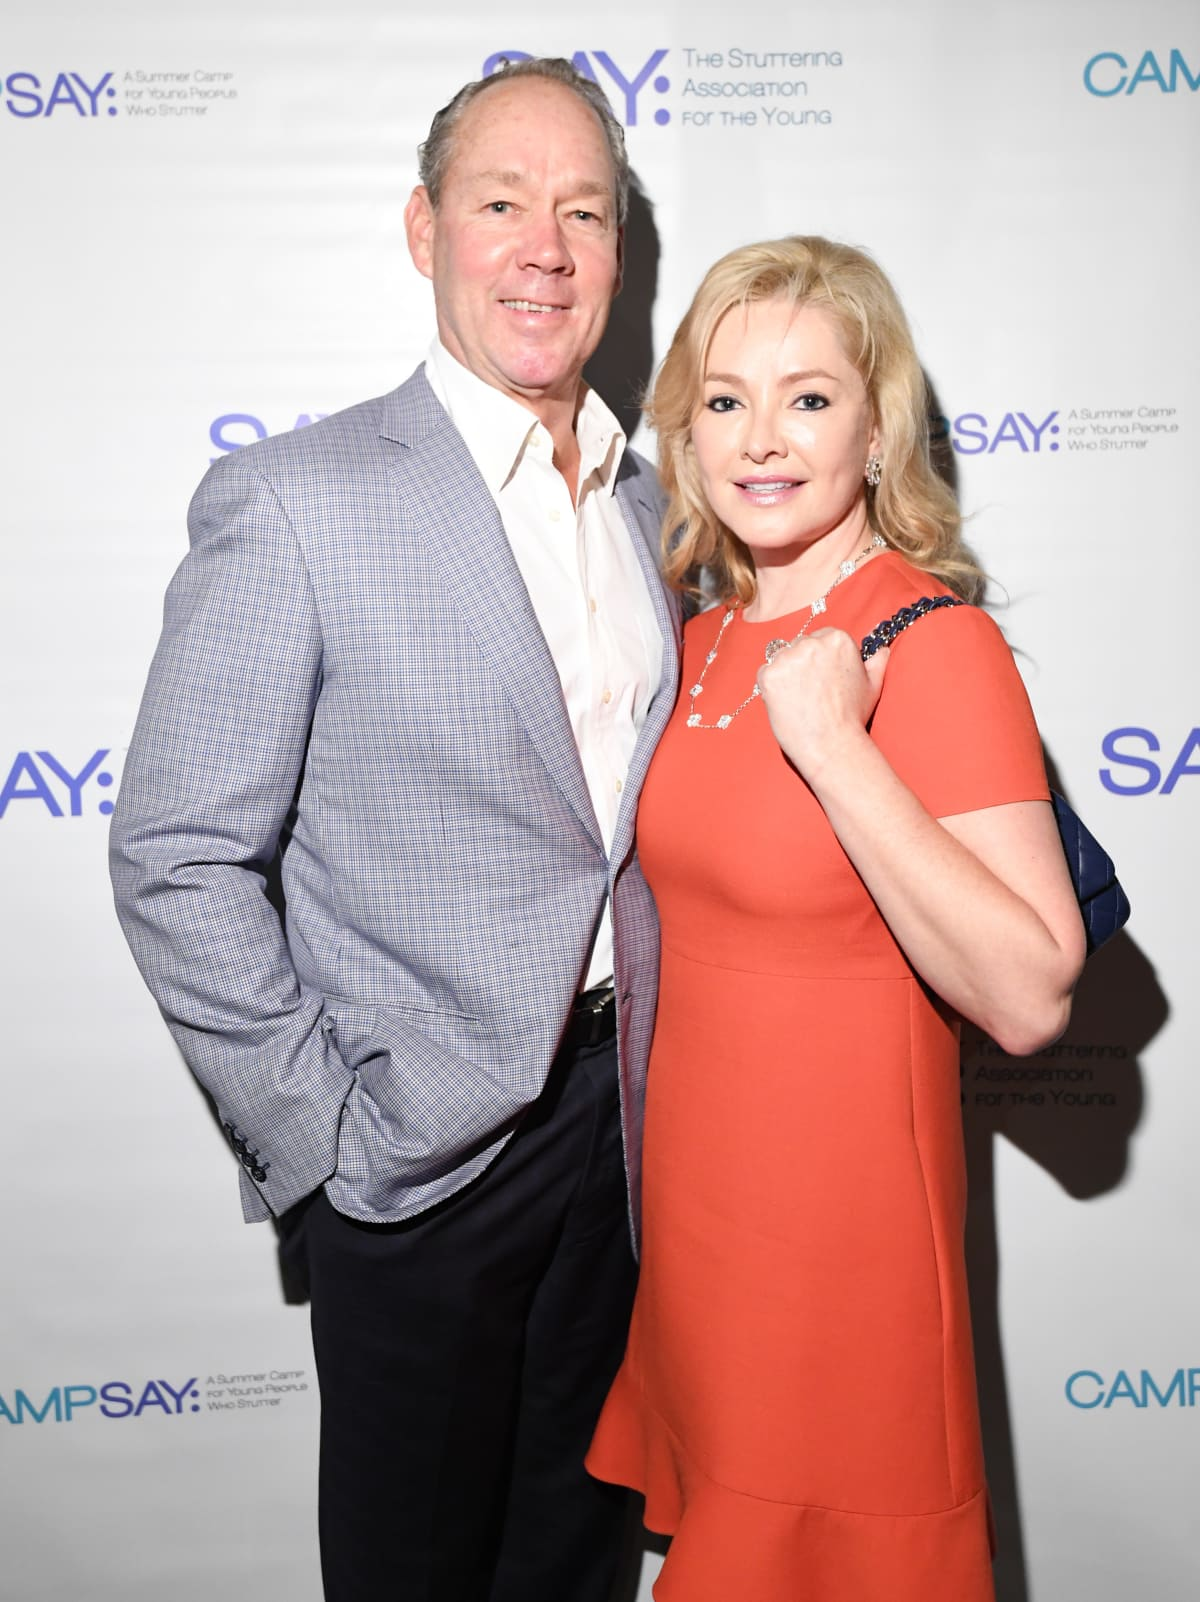 Houston, George Spring Bowling Event, June 2016, Jim Crane, Whitney Wheeler